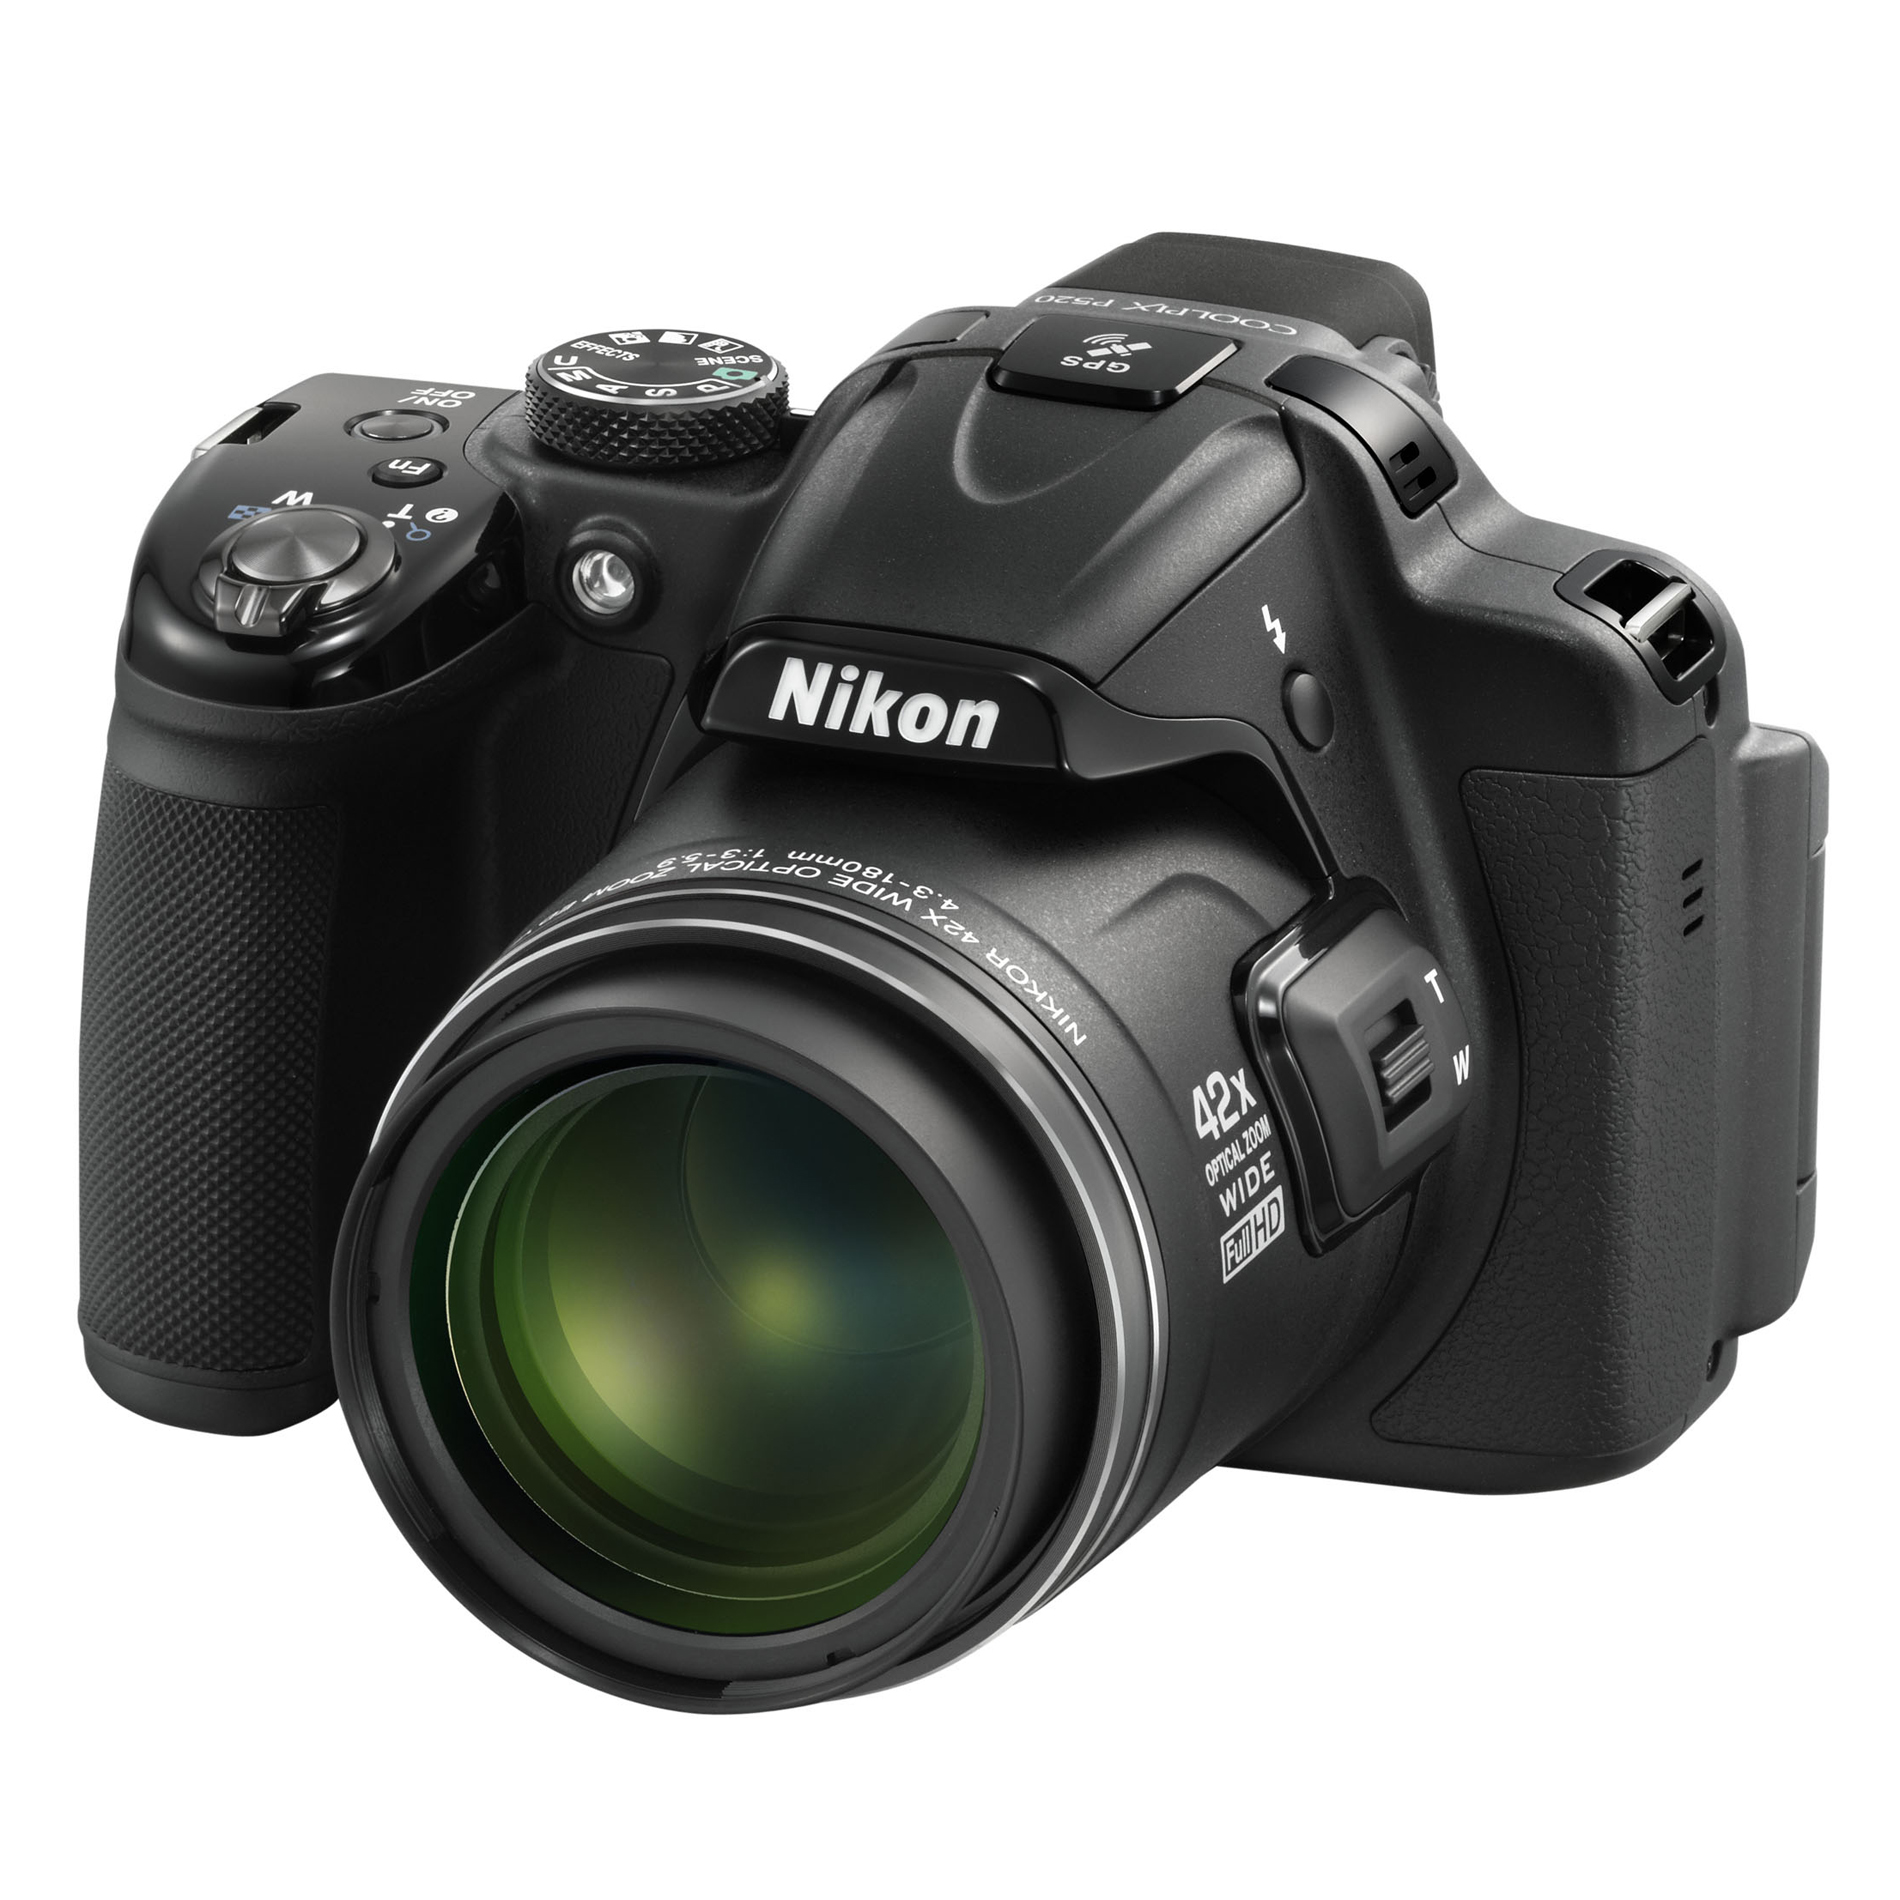 Nikon COOLPIX® 18.1 MP Digital Camera P520 - Black